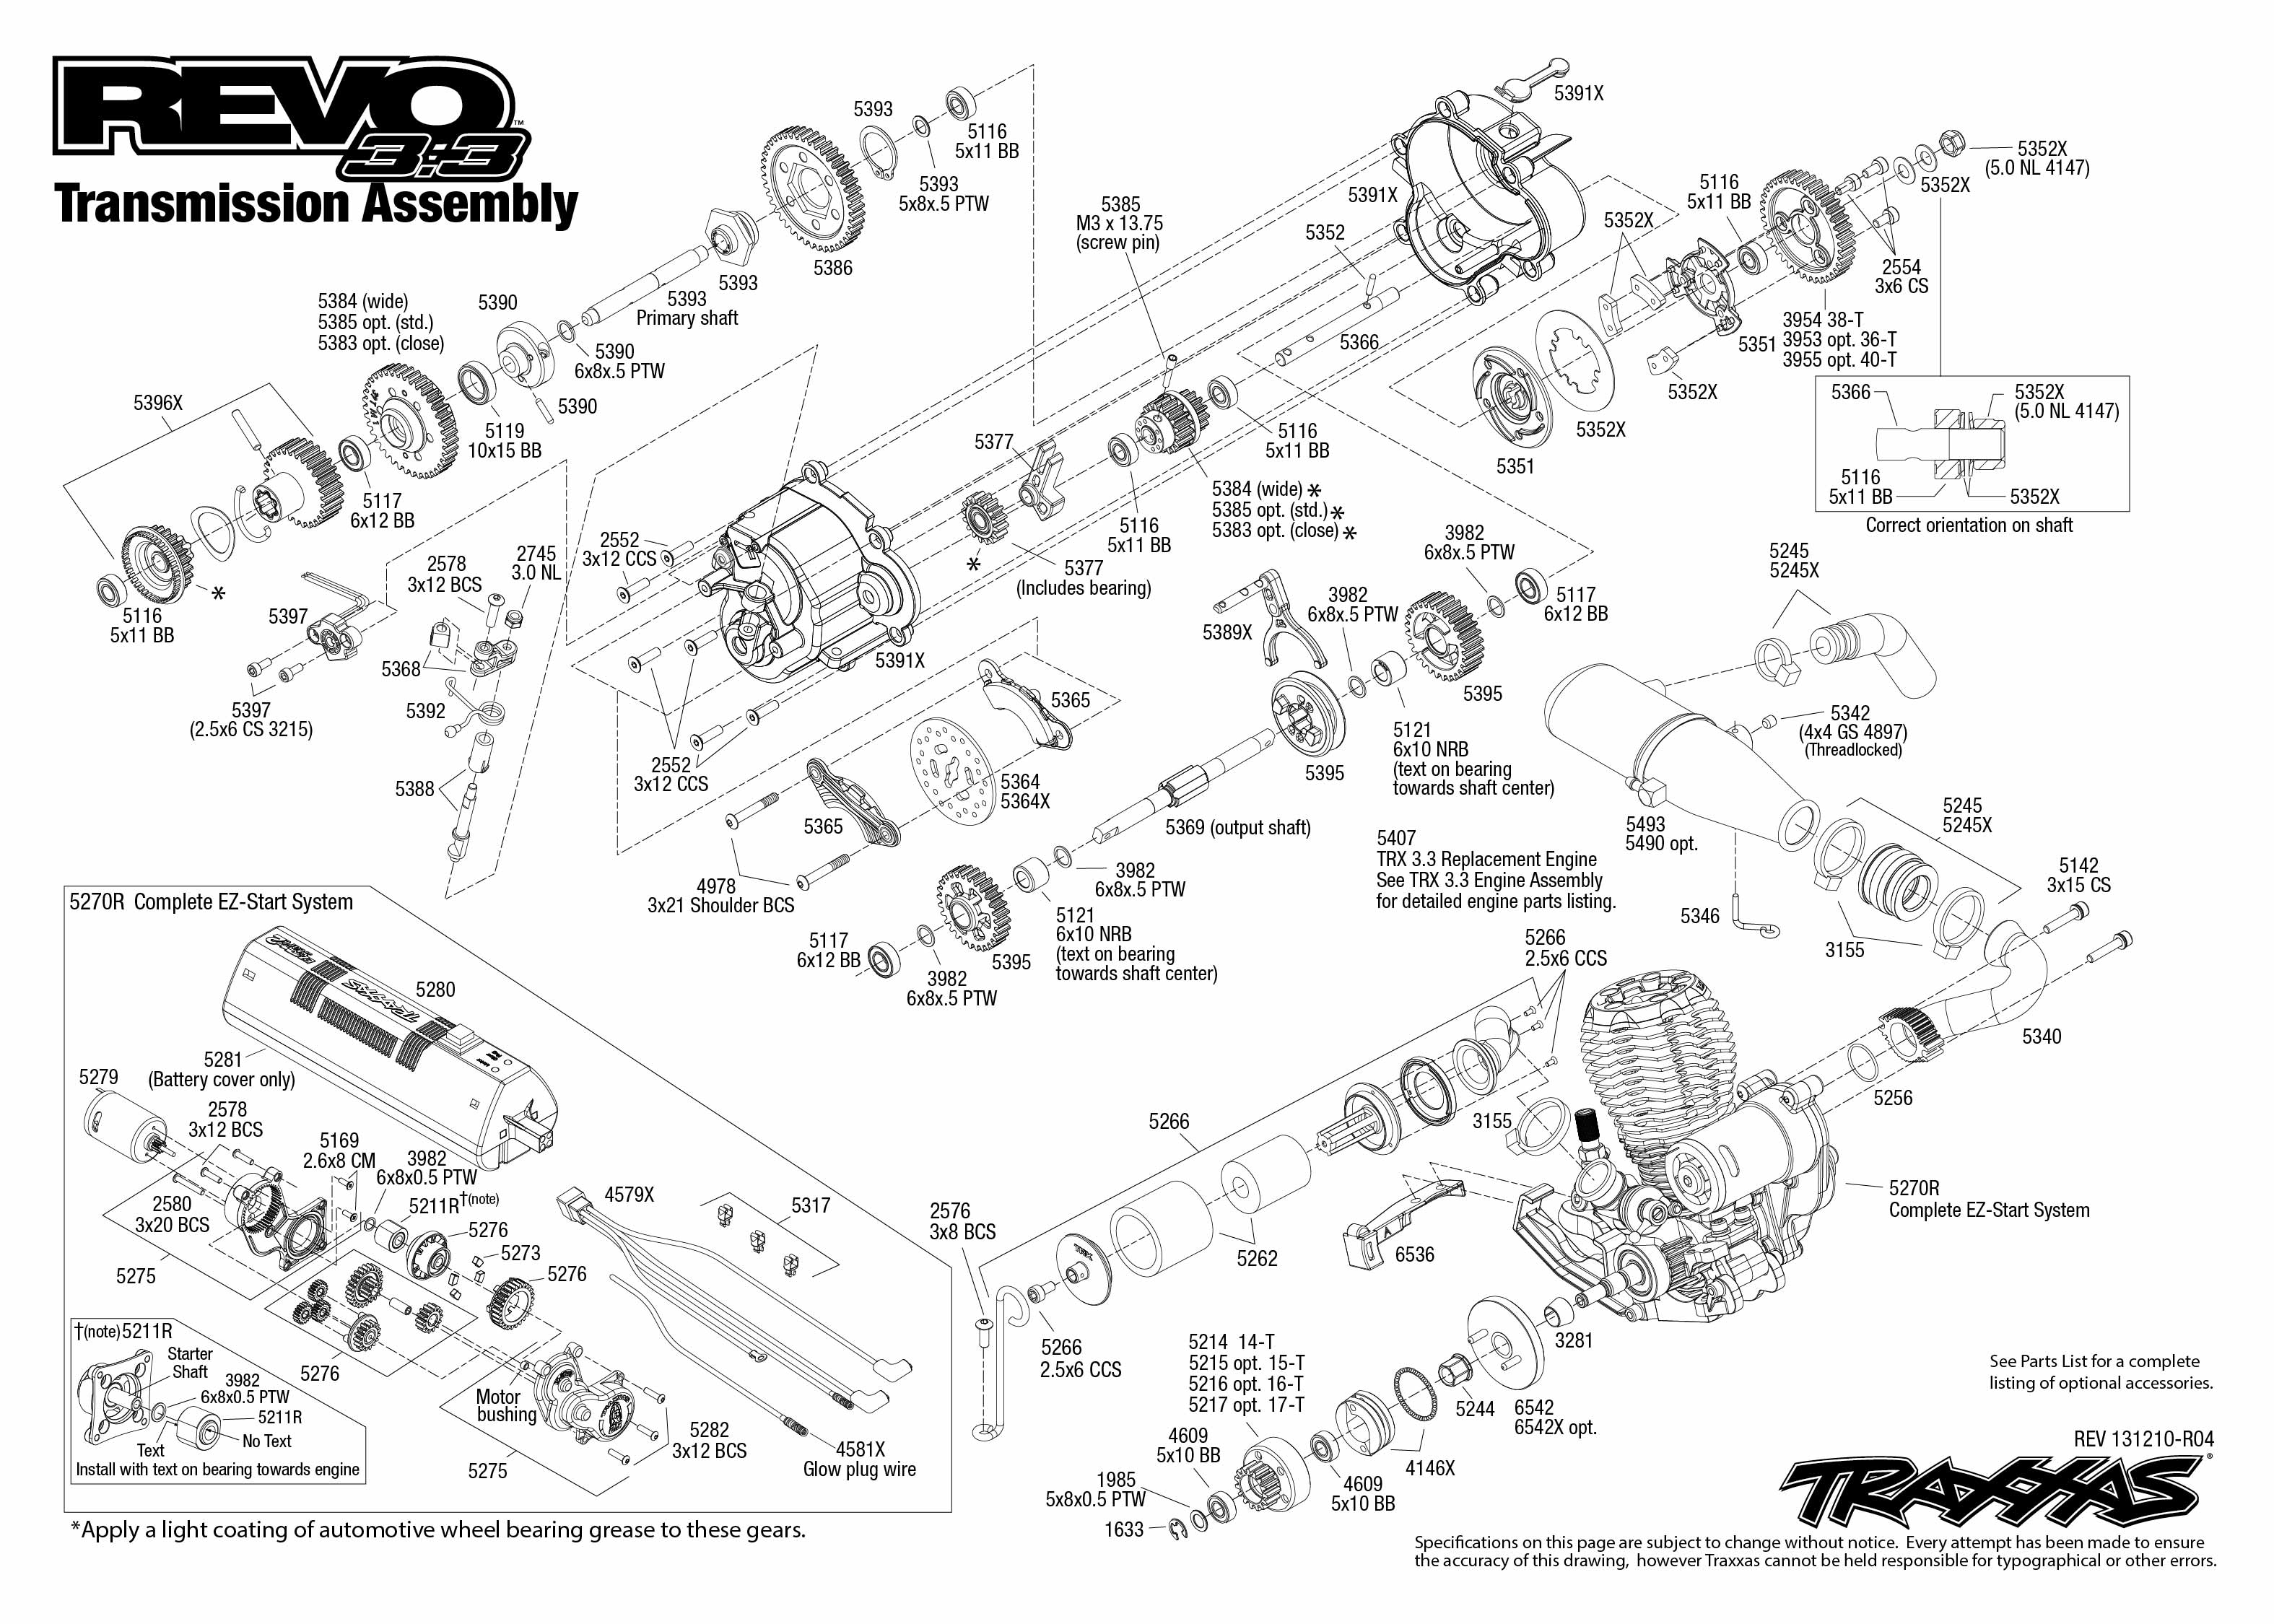 5309 Transmission Exploded View (Revo 3.3, w/ TQi 2.4GHz